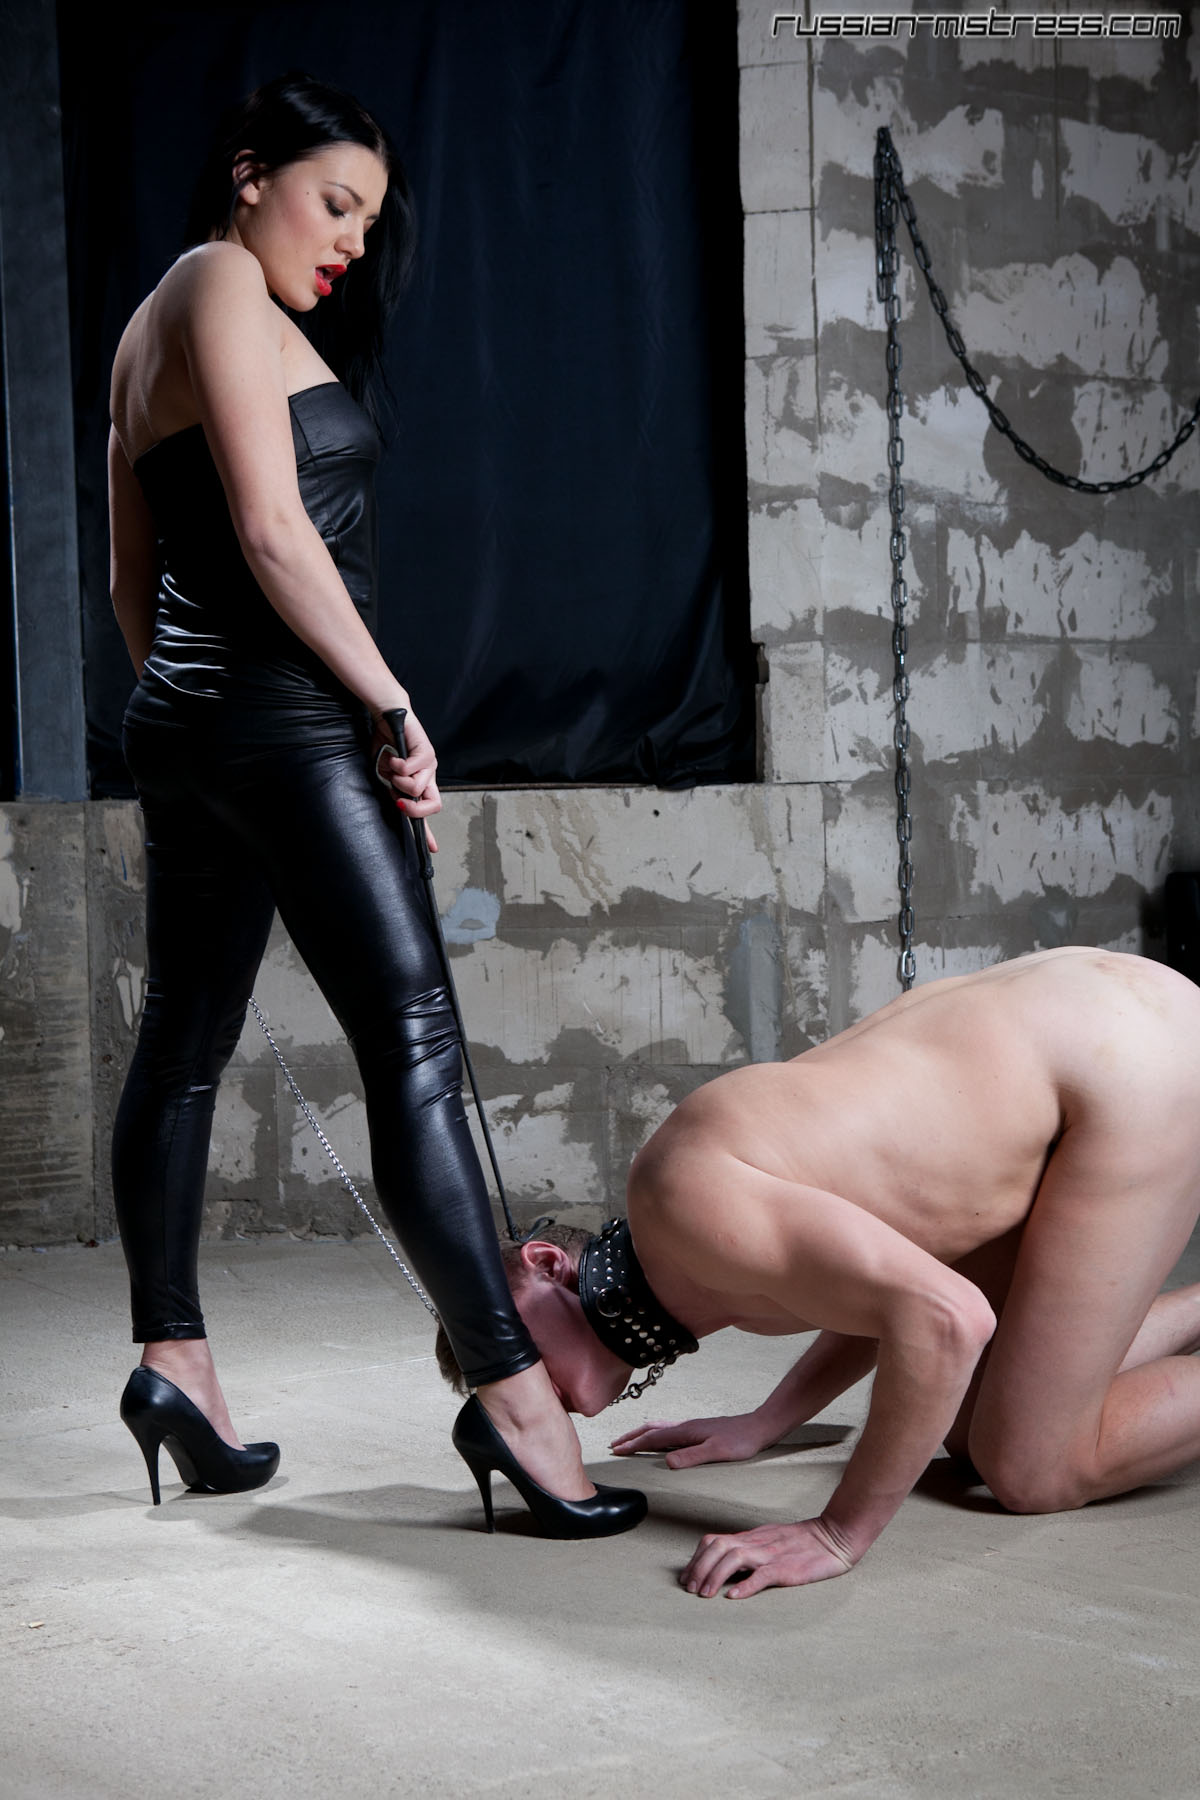 Femdom boy toy almost gets his tiny cock squashed during a raw CBT session